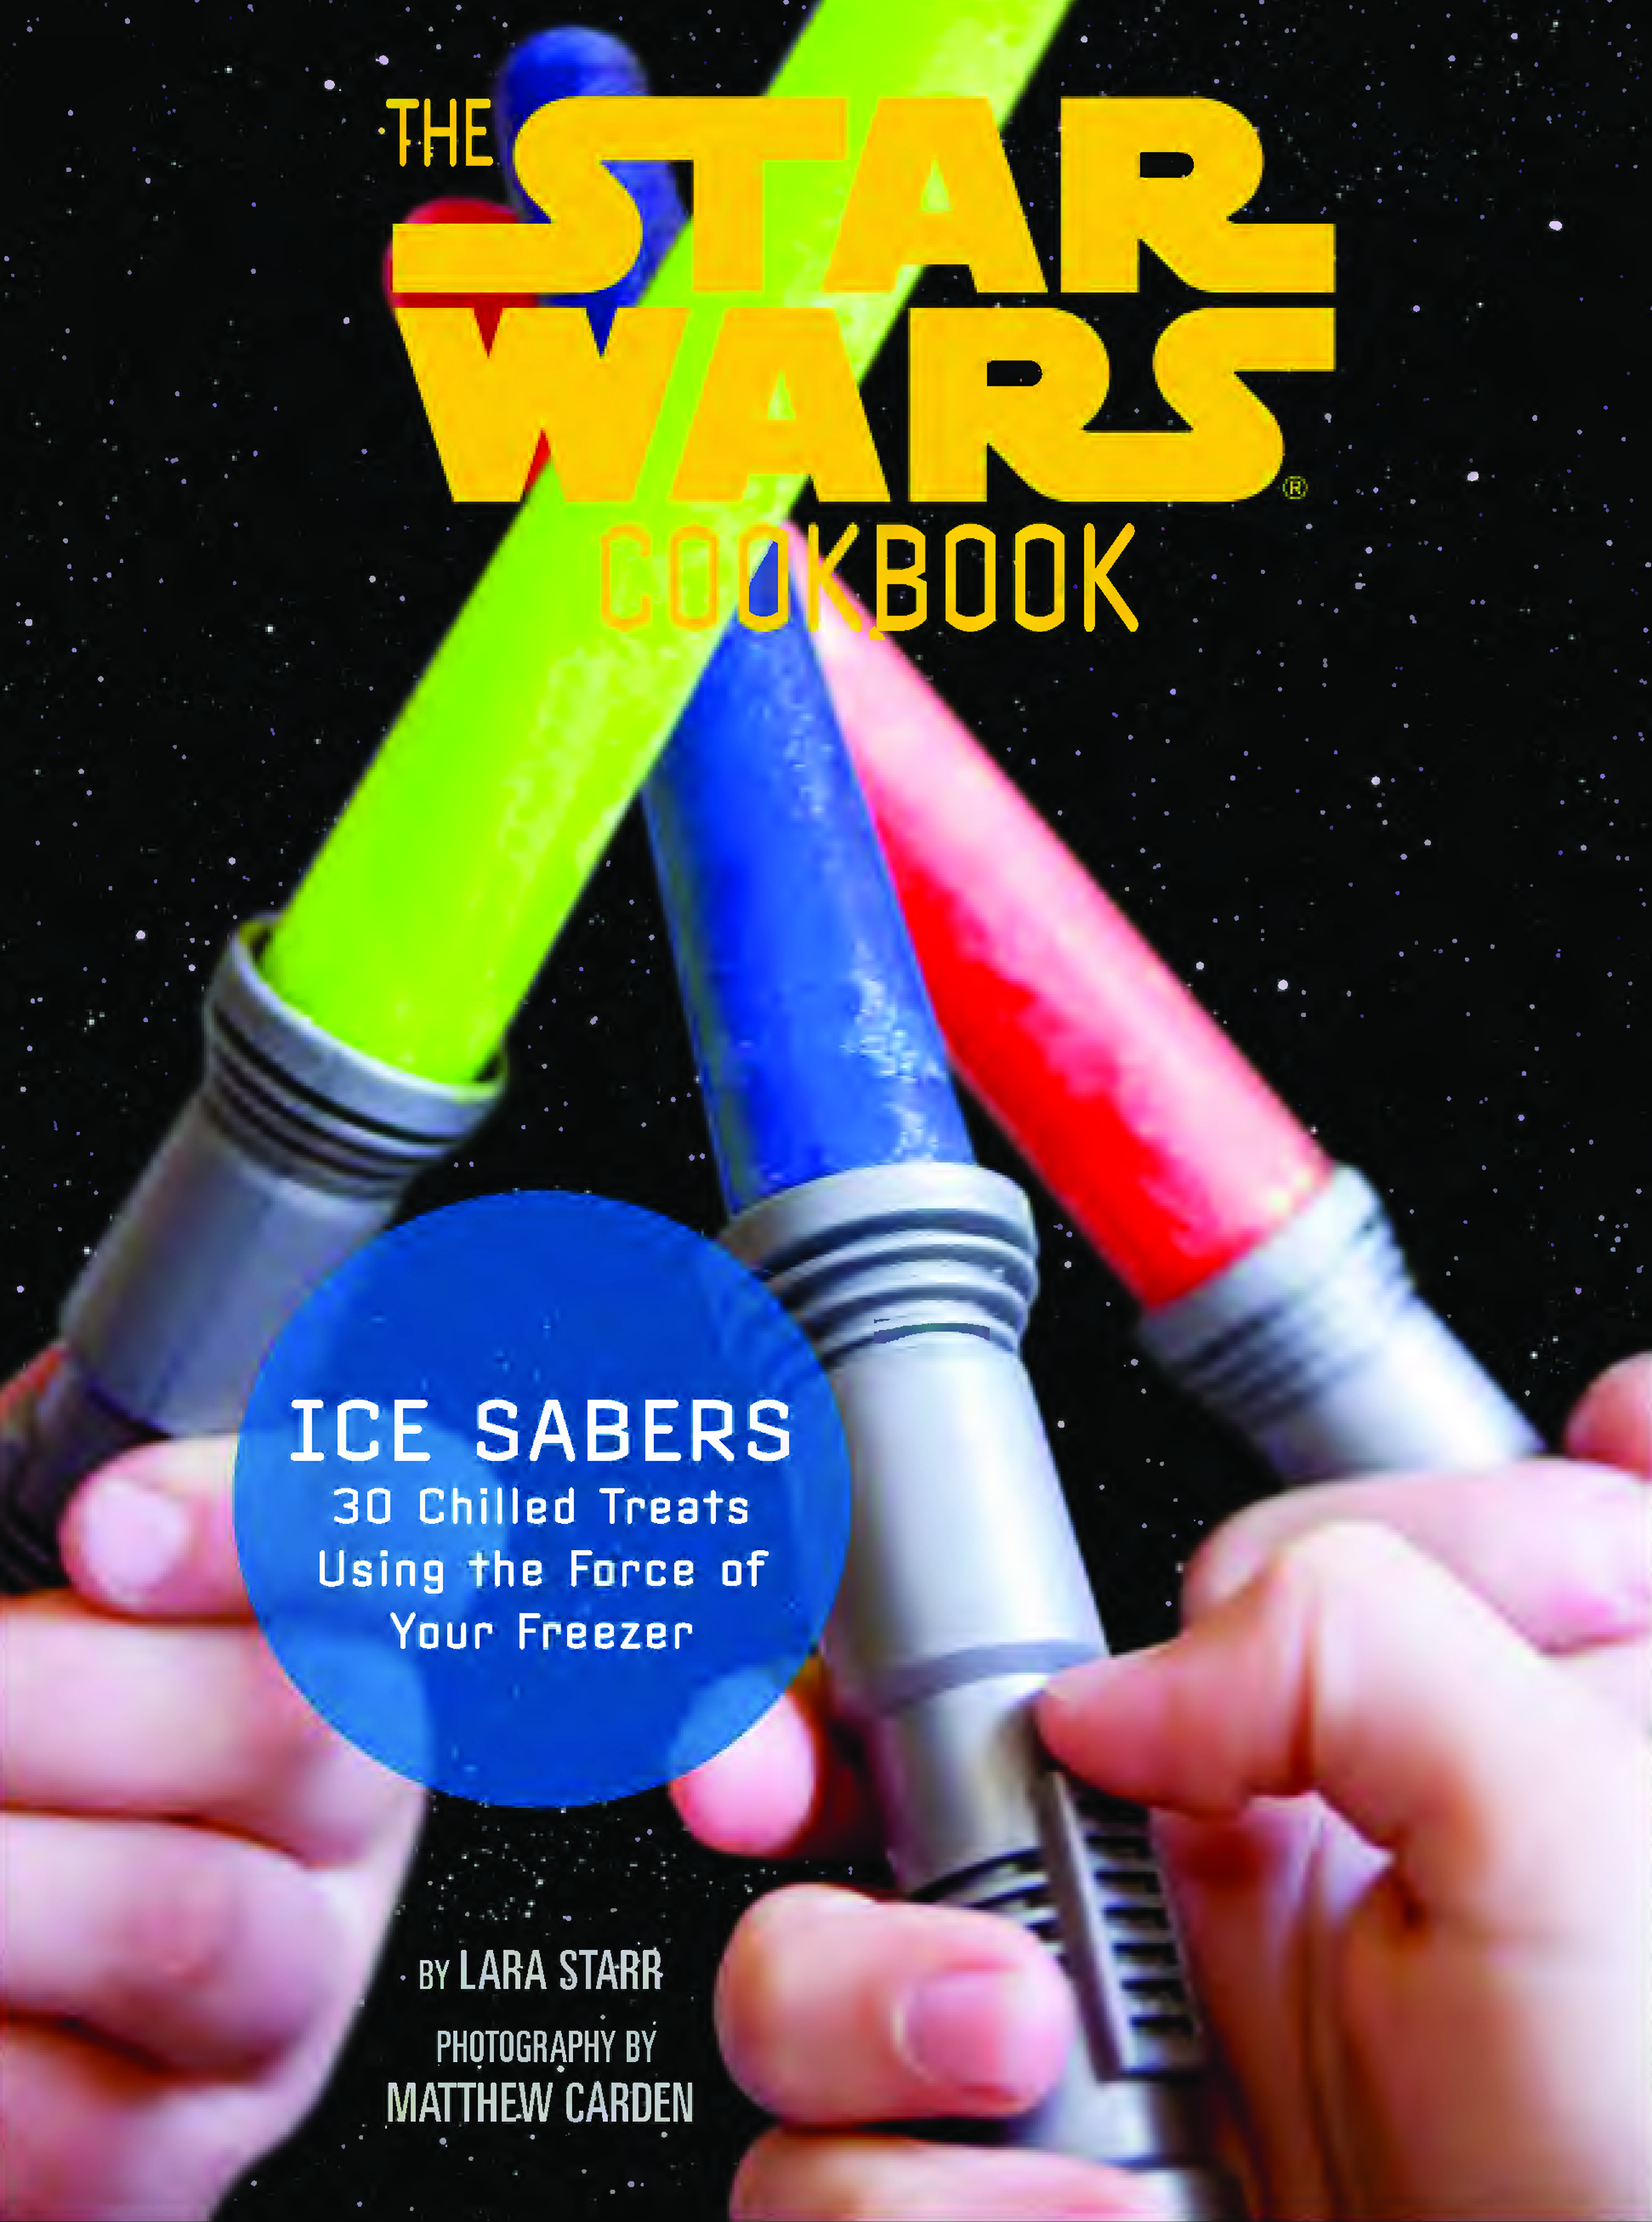 STAR WARS ICE SABERS ICE POP KIT AND COOKBOOK